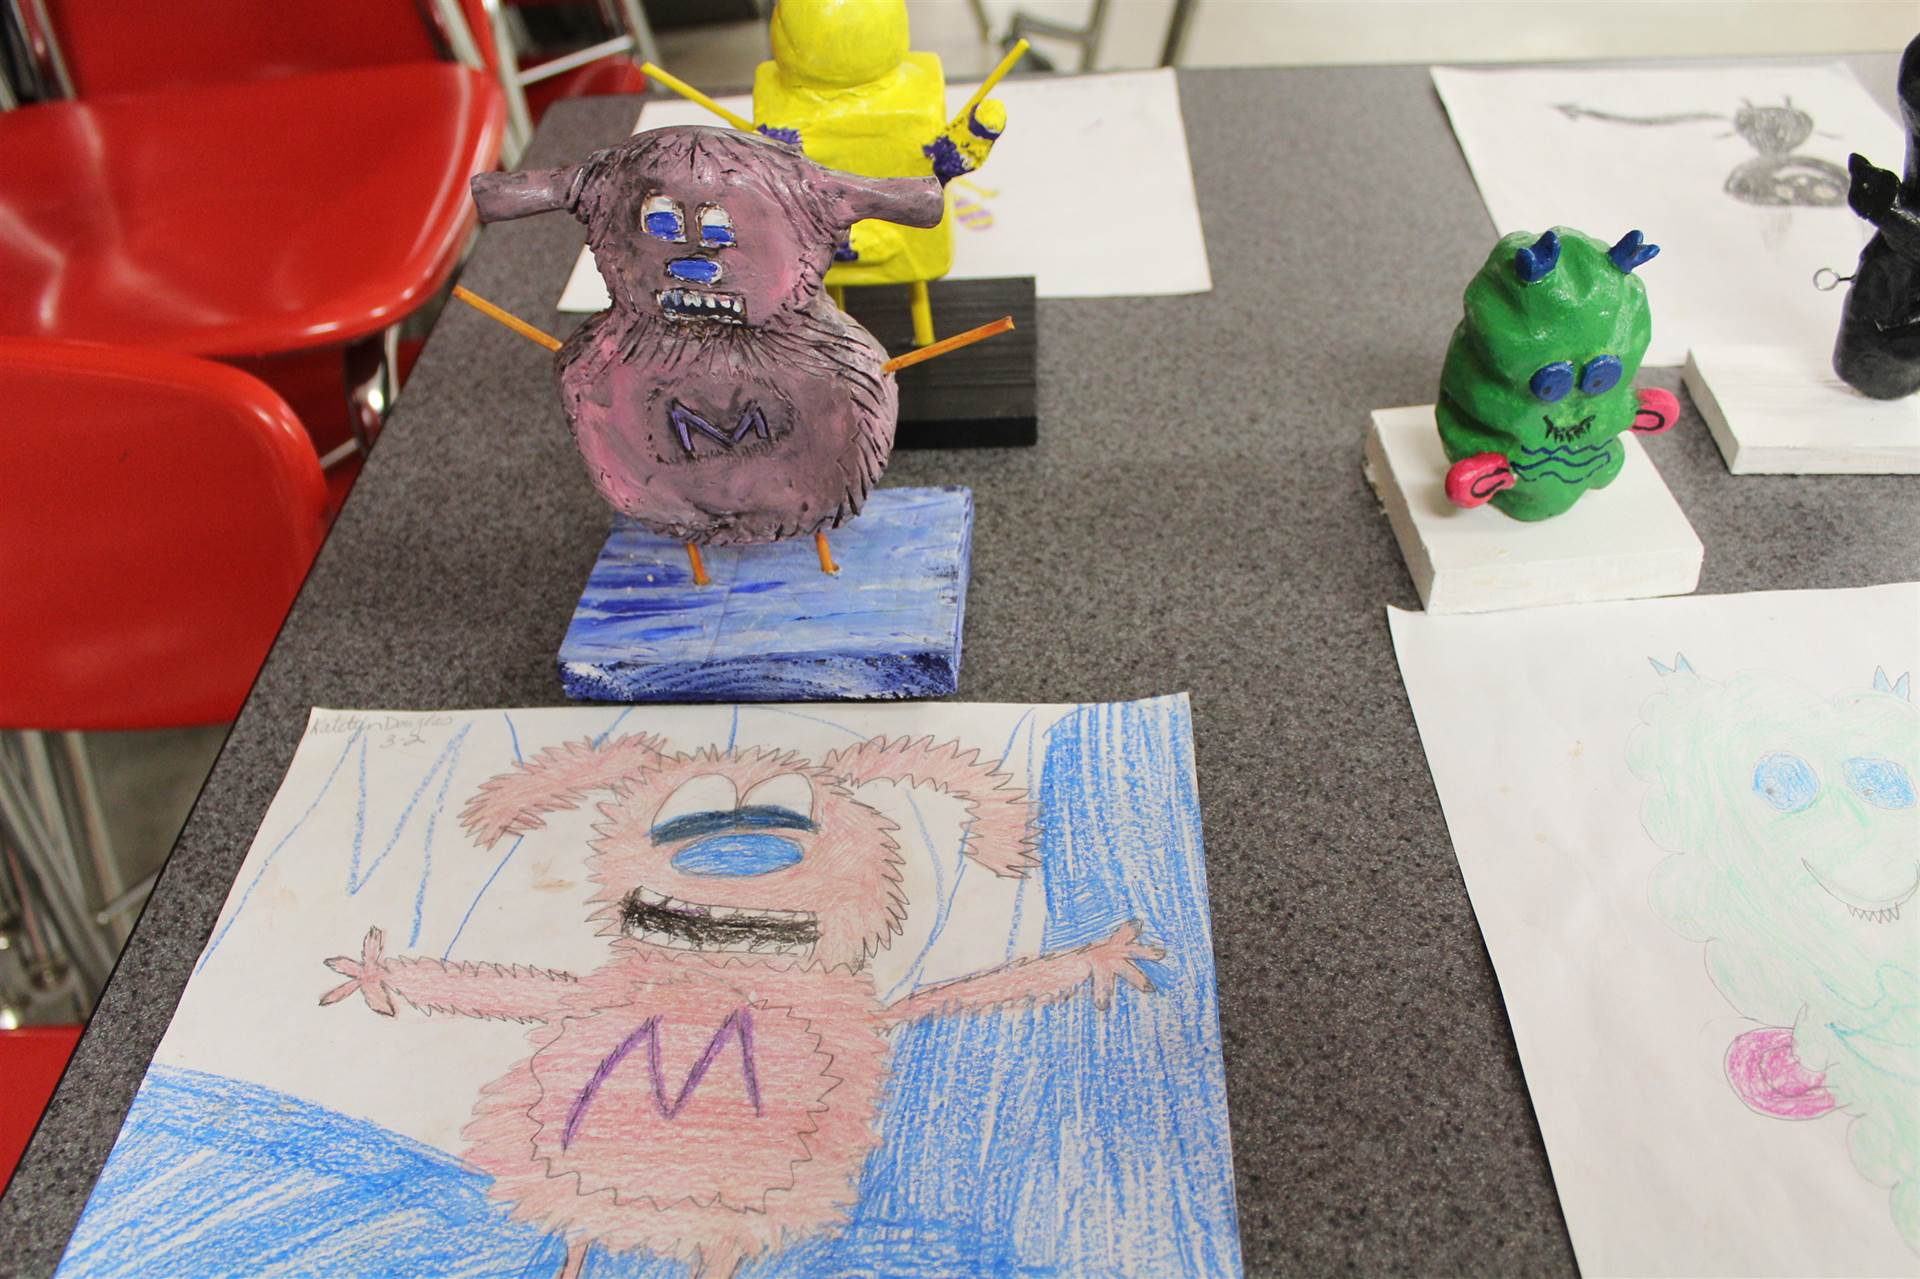 monster 3 d sculpture next to drawn picture 19.